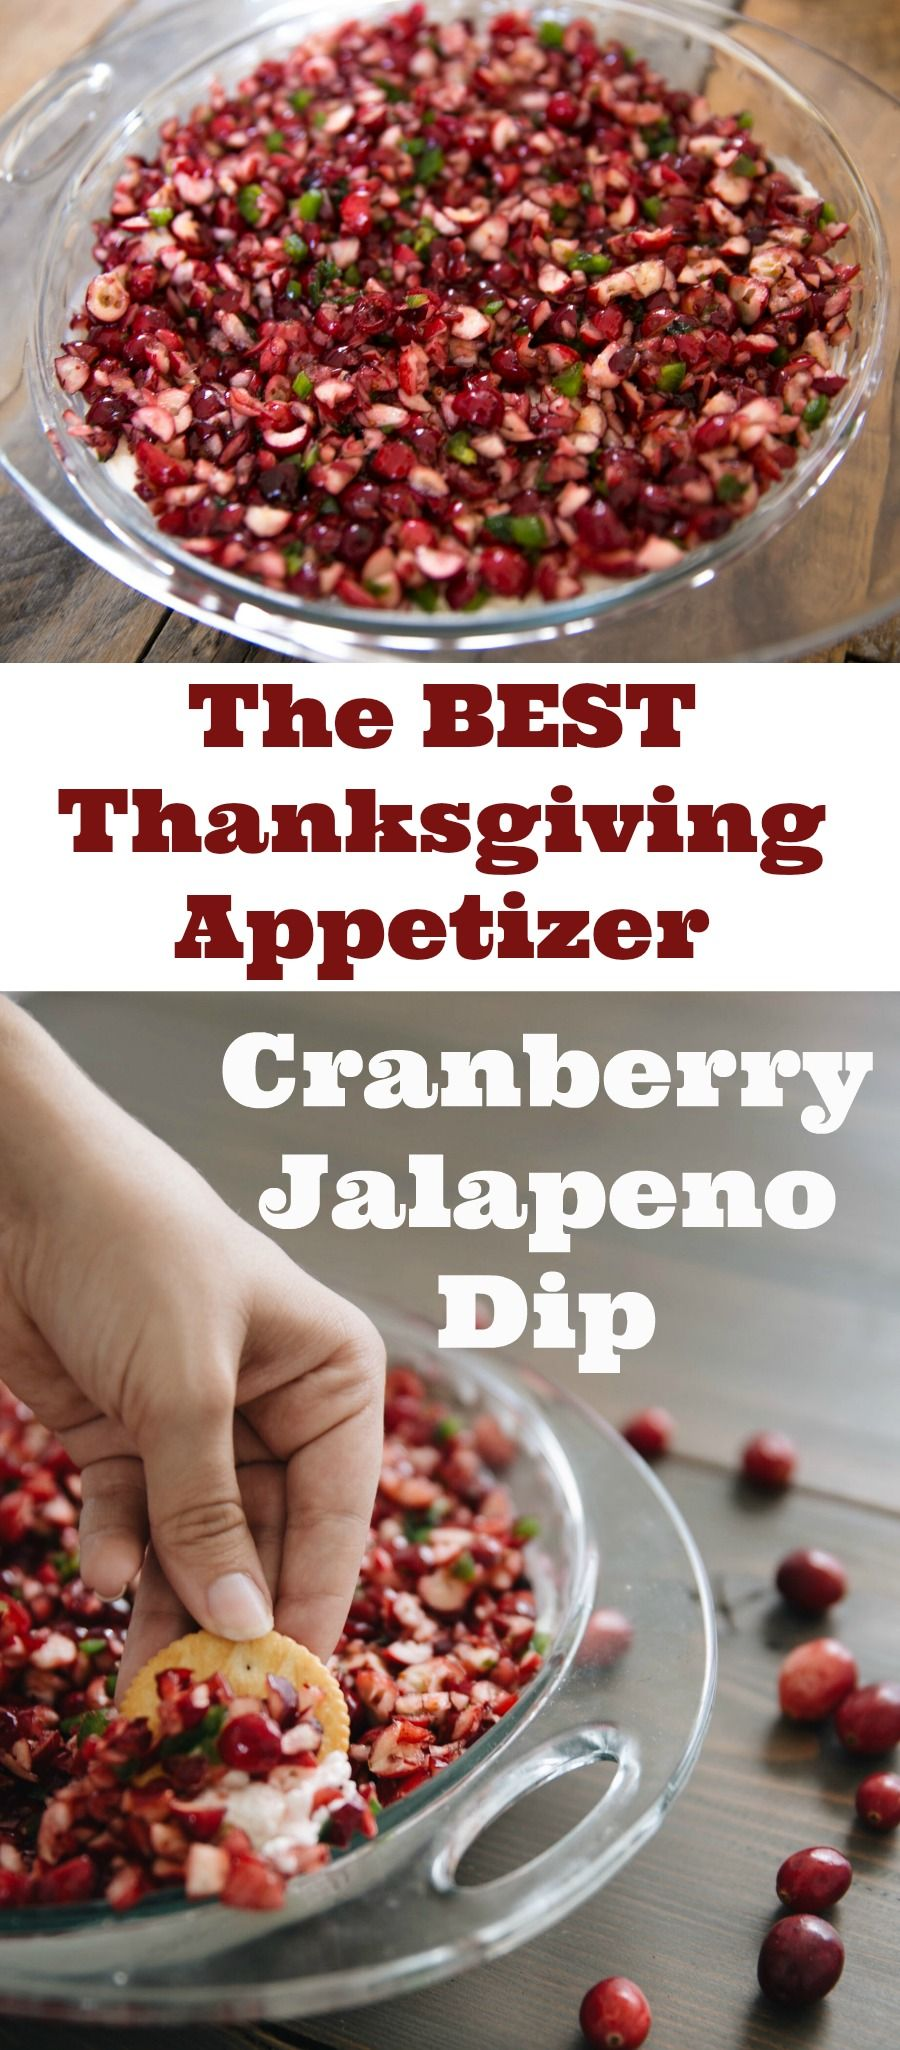 Everyone who eats this dip asks for the recipe. It's one of the best appetizers I've had in a long time - cranberry, jalapeno, cream cheese, green onion all make for a spicy, tangy and sweet meal. This is perfect for Thanksgiving and Christmas and the holidays are right around the corner! Try this Cranberry Jalapeno Dip - I promise you'll be addicted! #thanksgivingappetizersideas